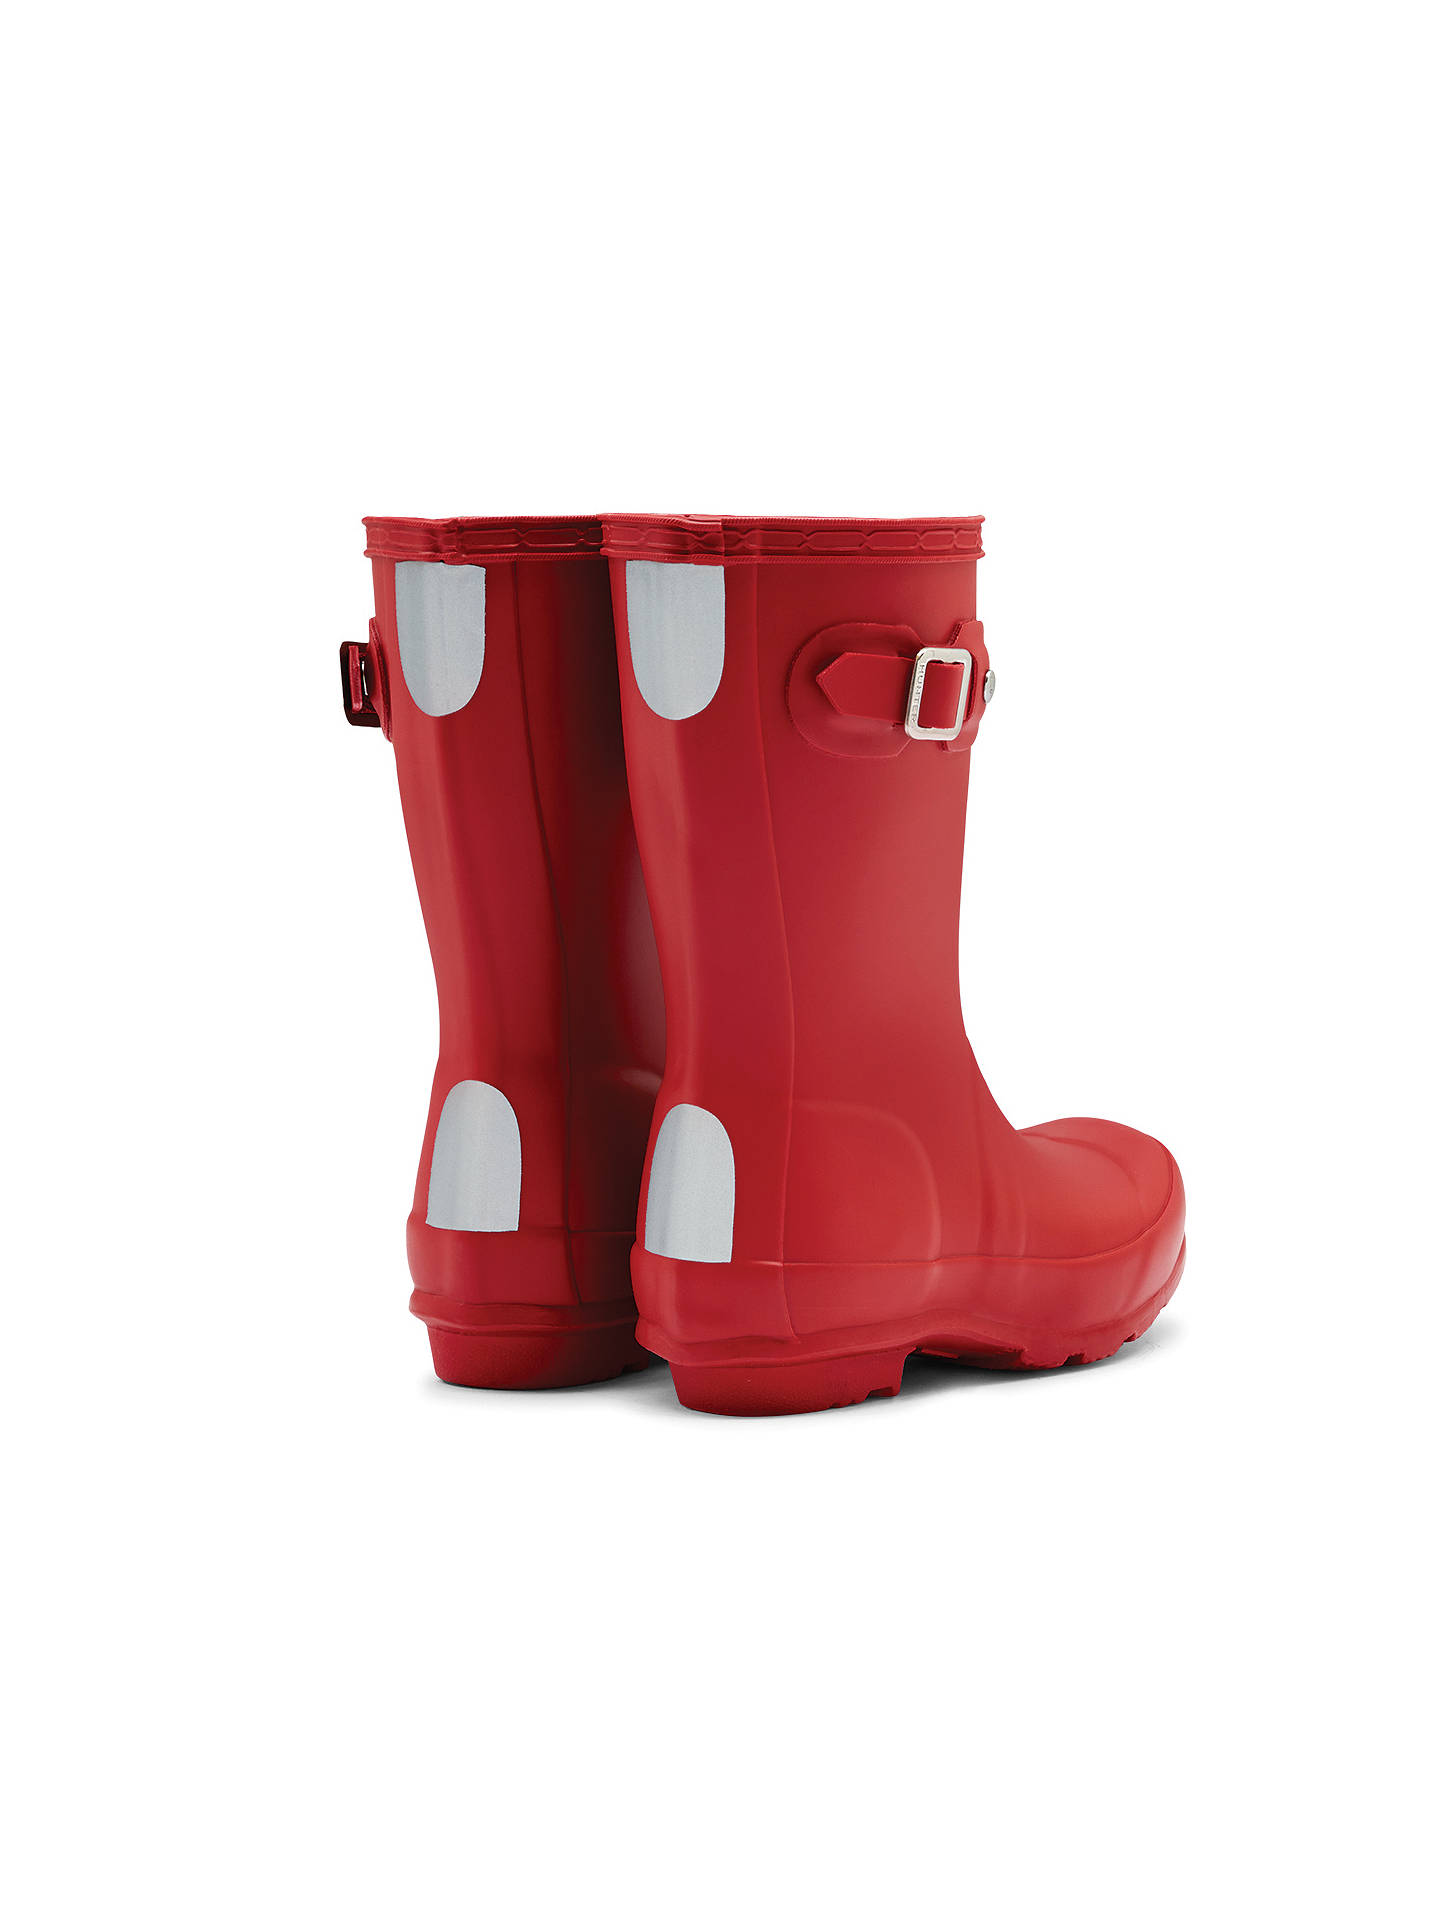 6260d5bd6df Hunter Children's Original Wellington Boots at John Lewis & Partners